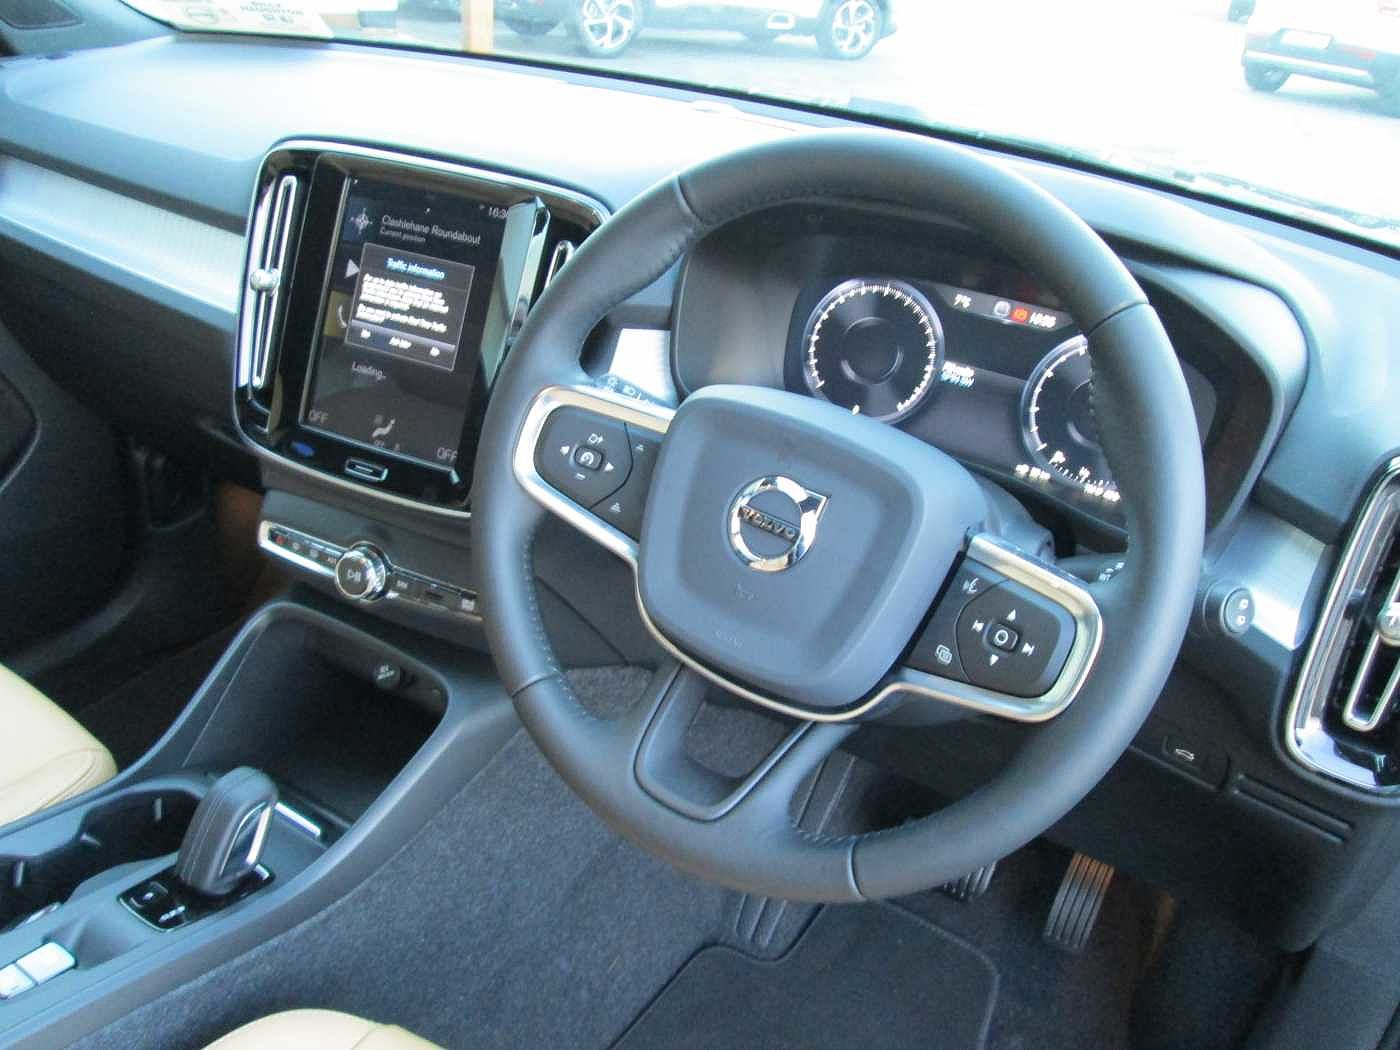 Volvo  T3 Momentum Auto (Volvo On Call, City Safety, Leather Seats)